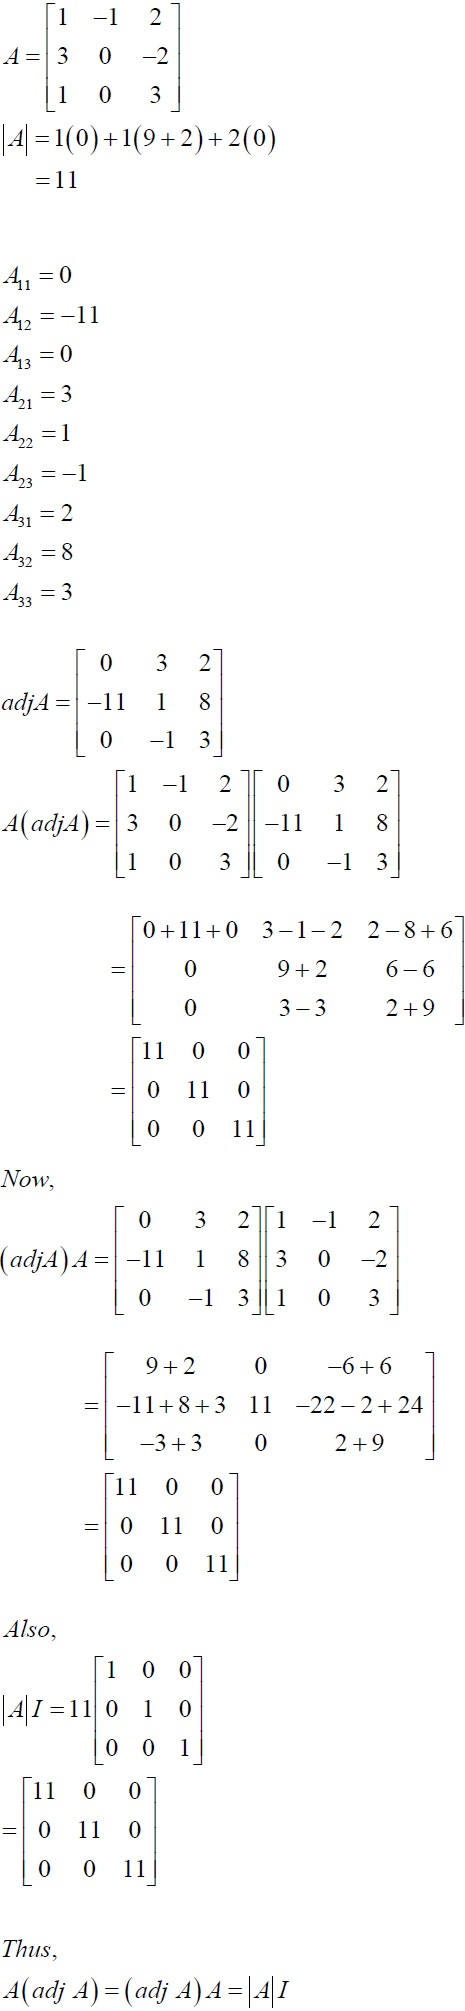 NCERT Solutions for CBSE Class 12 Mathematics ‒ Chapter 4: Determinant (Solution 4)